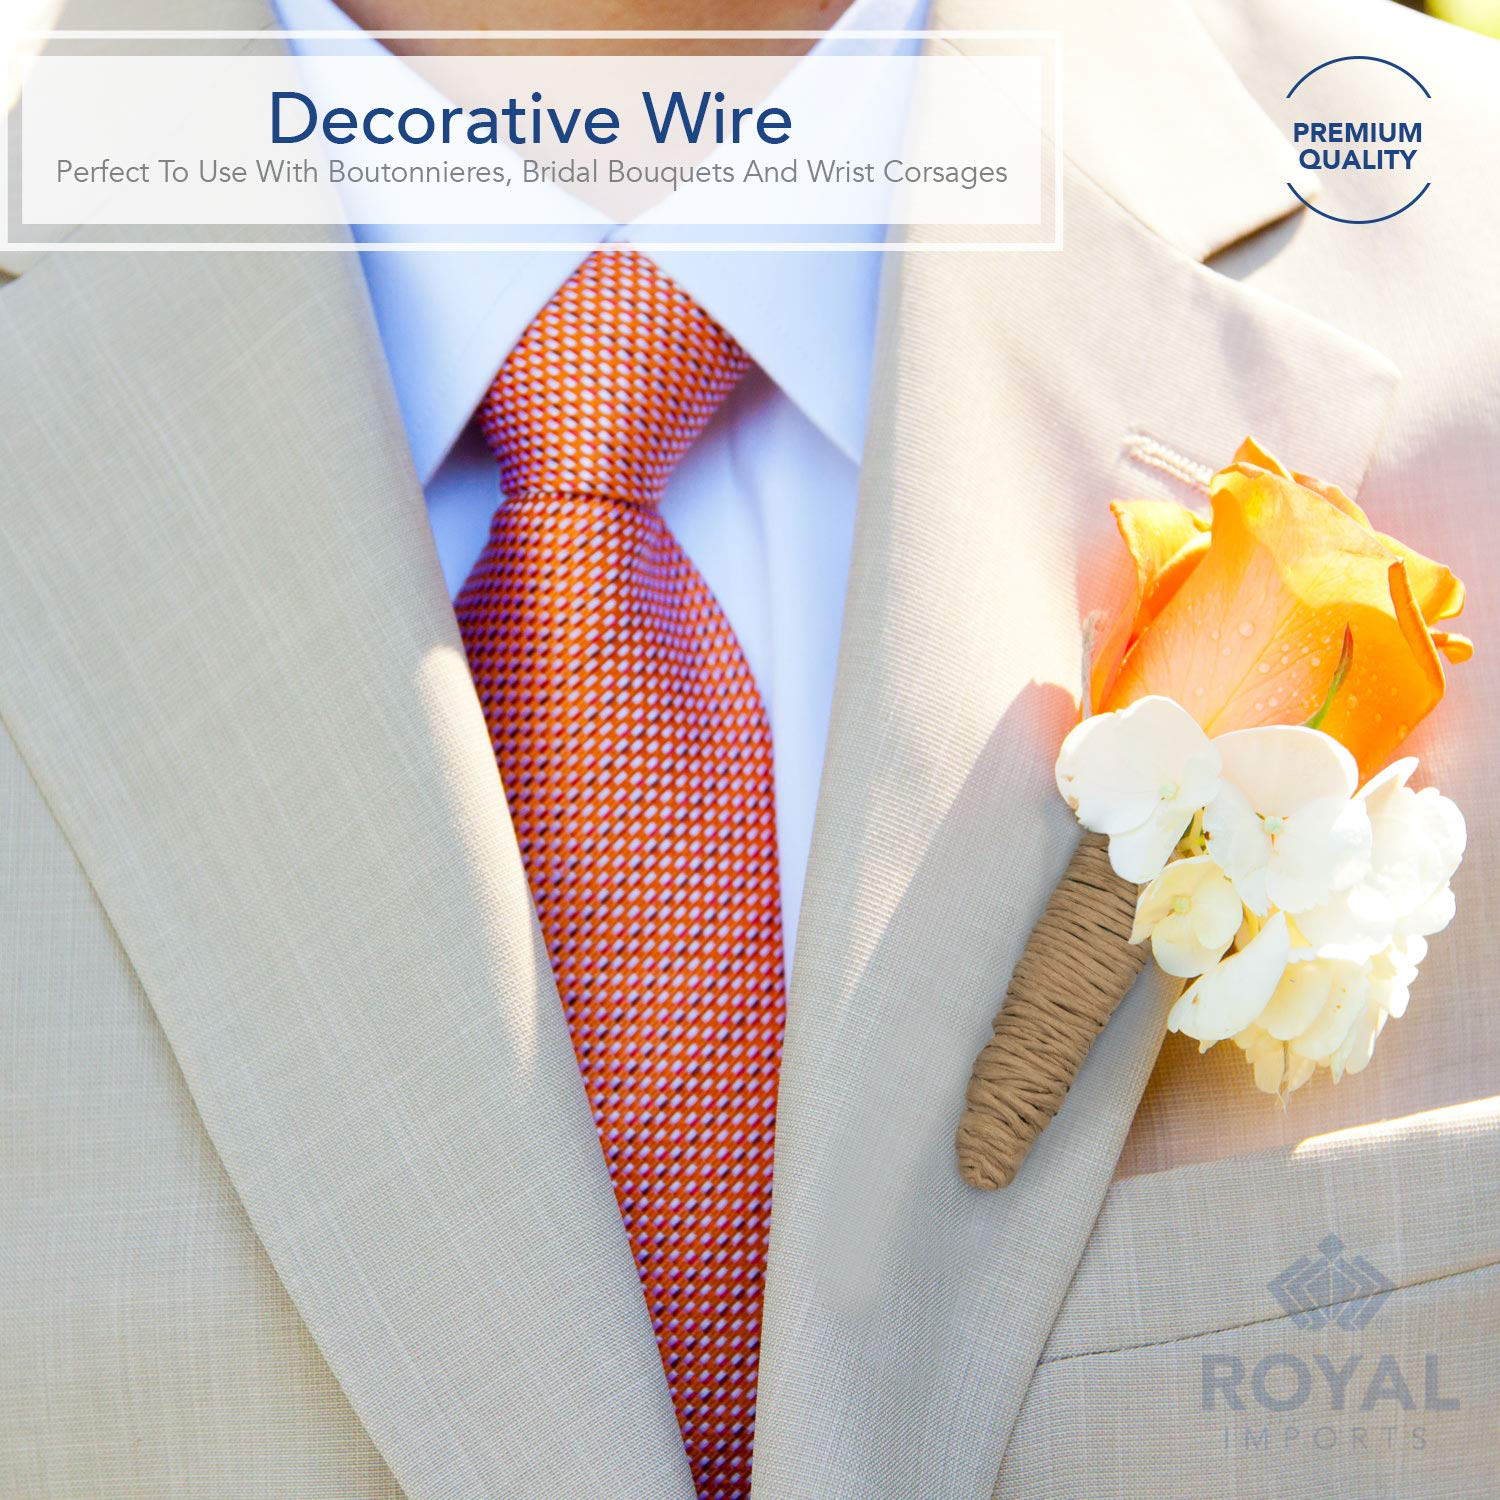 by Royal Imports Green Floral Bind Wire Wrap Twine Paper Covered Waterproof Rustic Vine for Flower Bouquets 26 Gauge 673 Ft